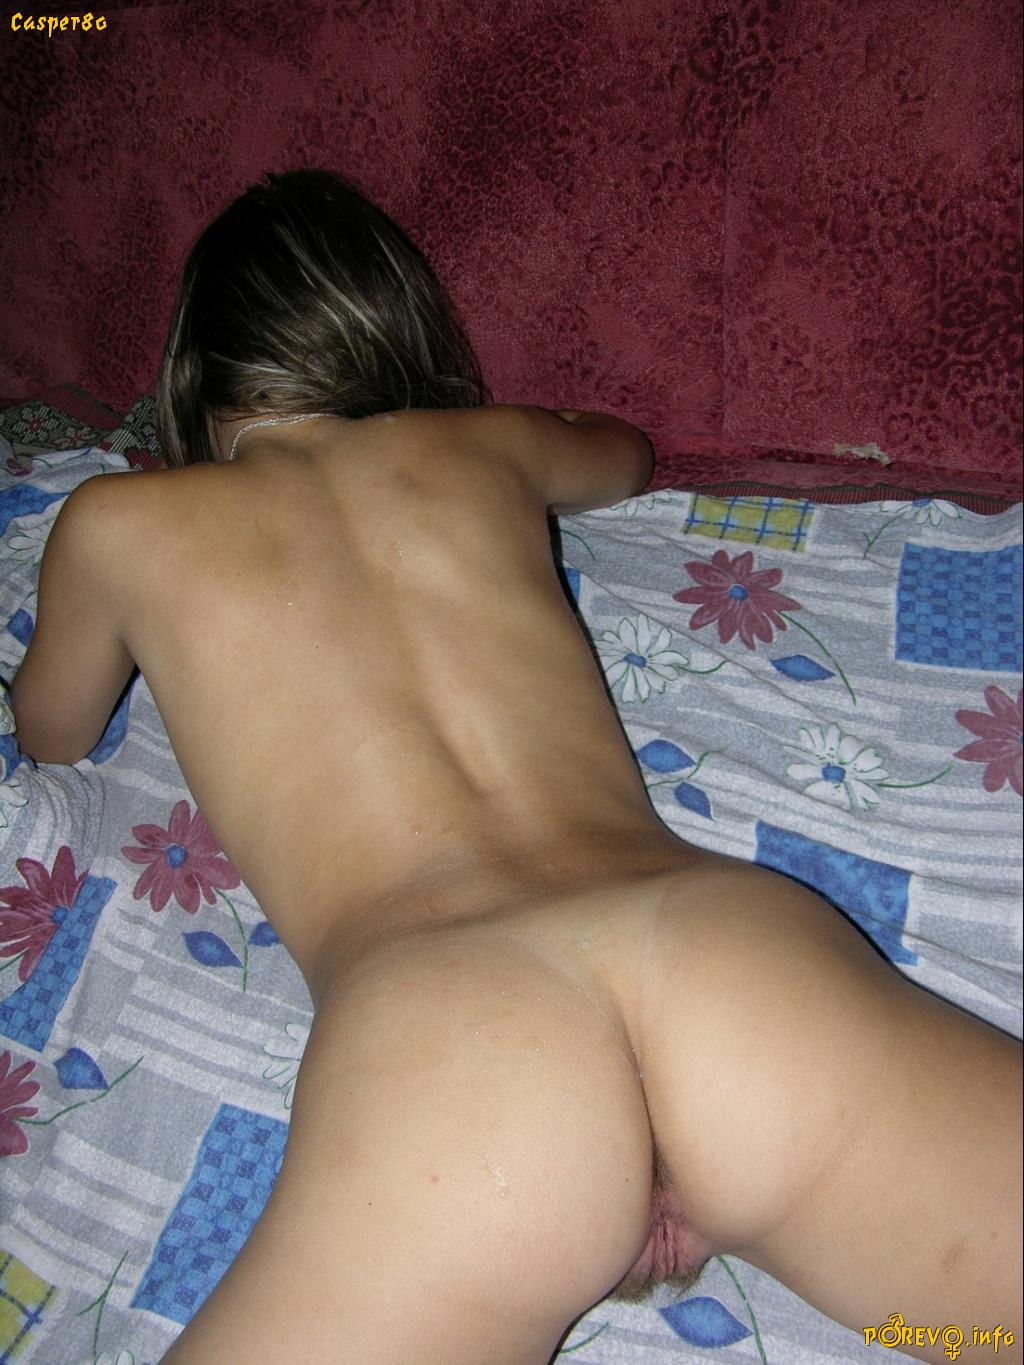 Something is. Fastpic ru nude porn join. All